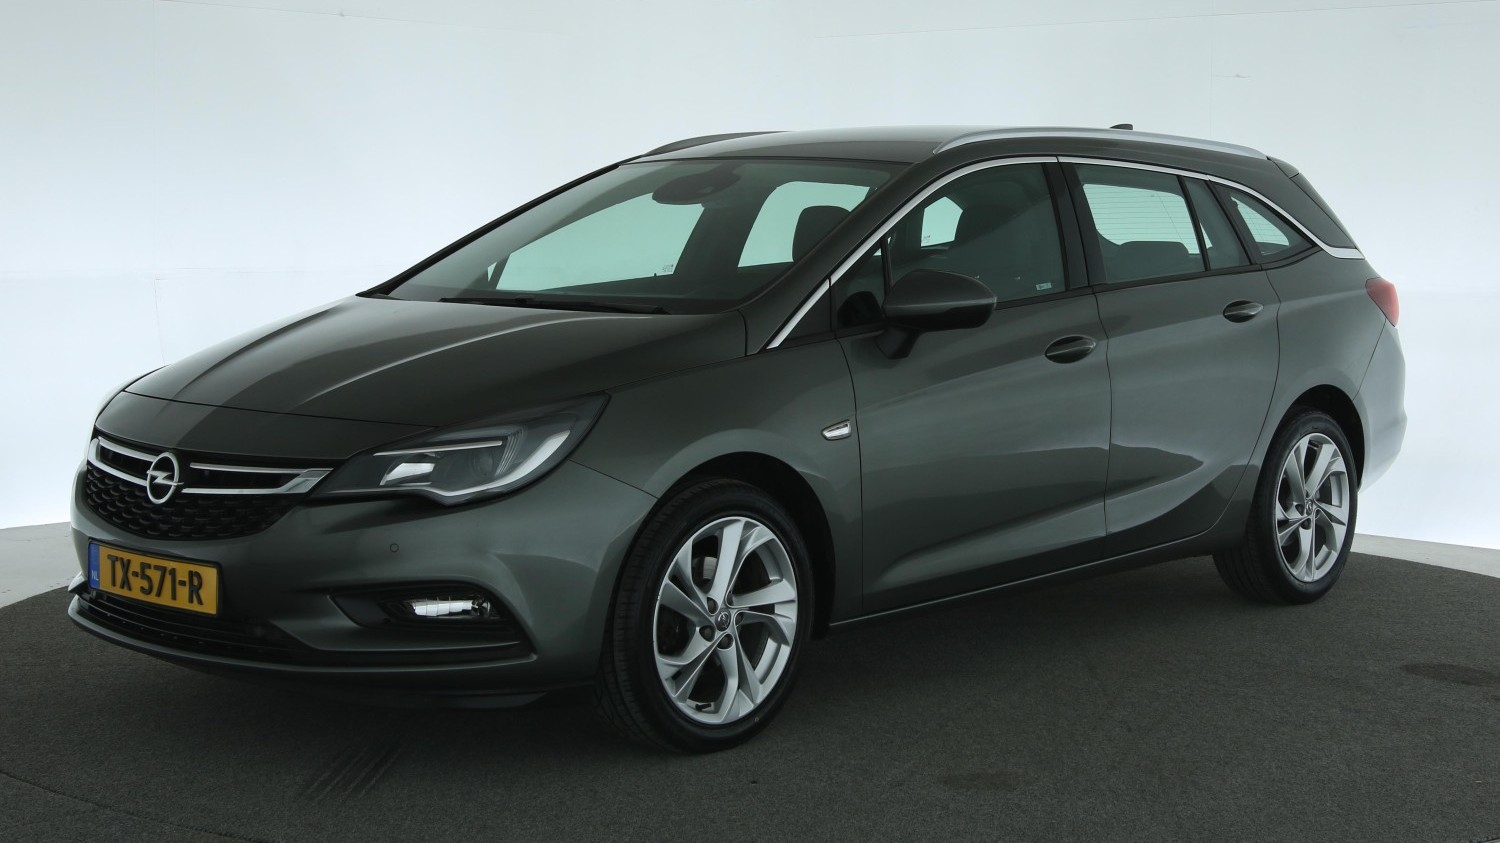 Opel Astra Station 2017 TX-571-R 1